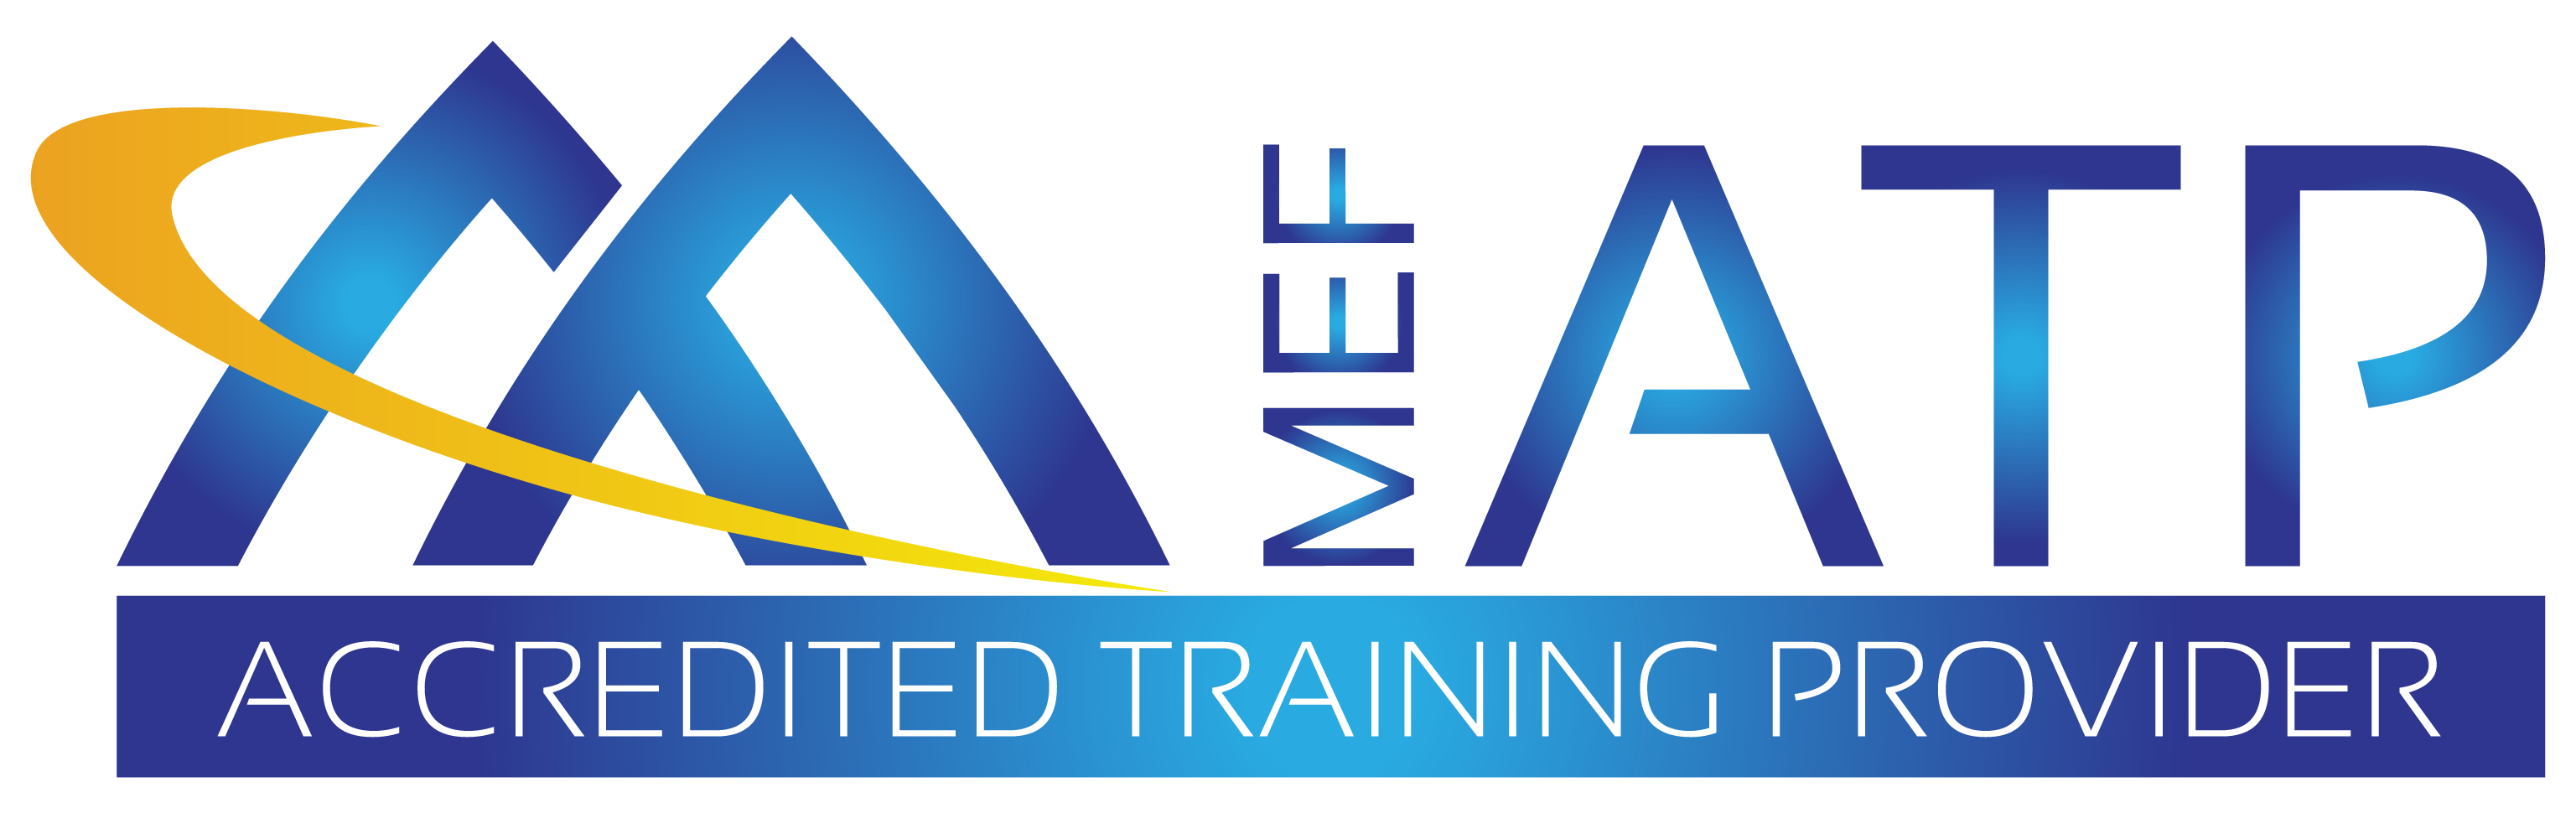 MEF_Official_MEF-ATP_Logo_Gradient_Yellow_Blue_RGB_Dec-11-2017-01